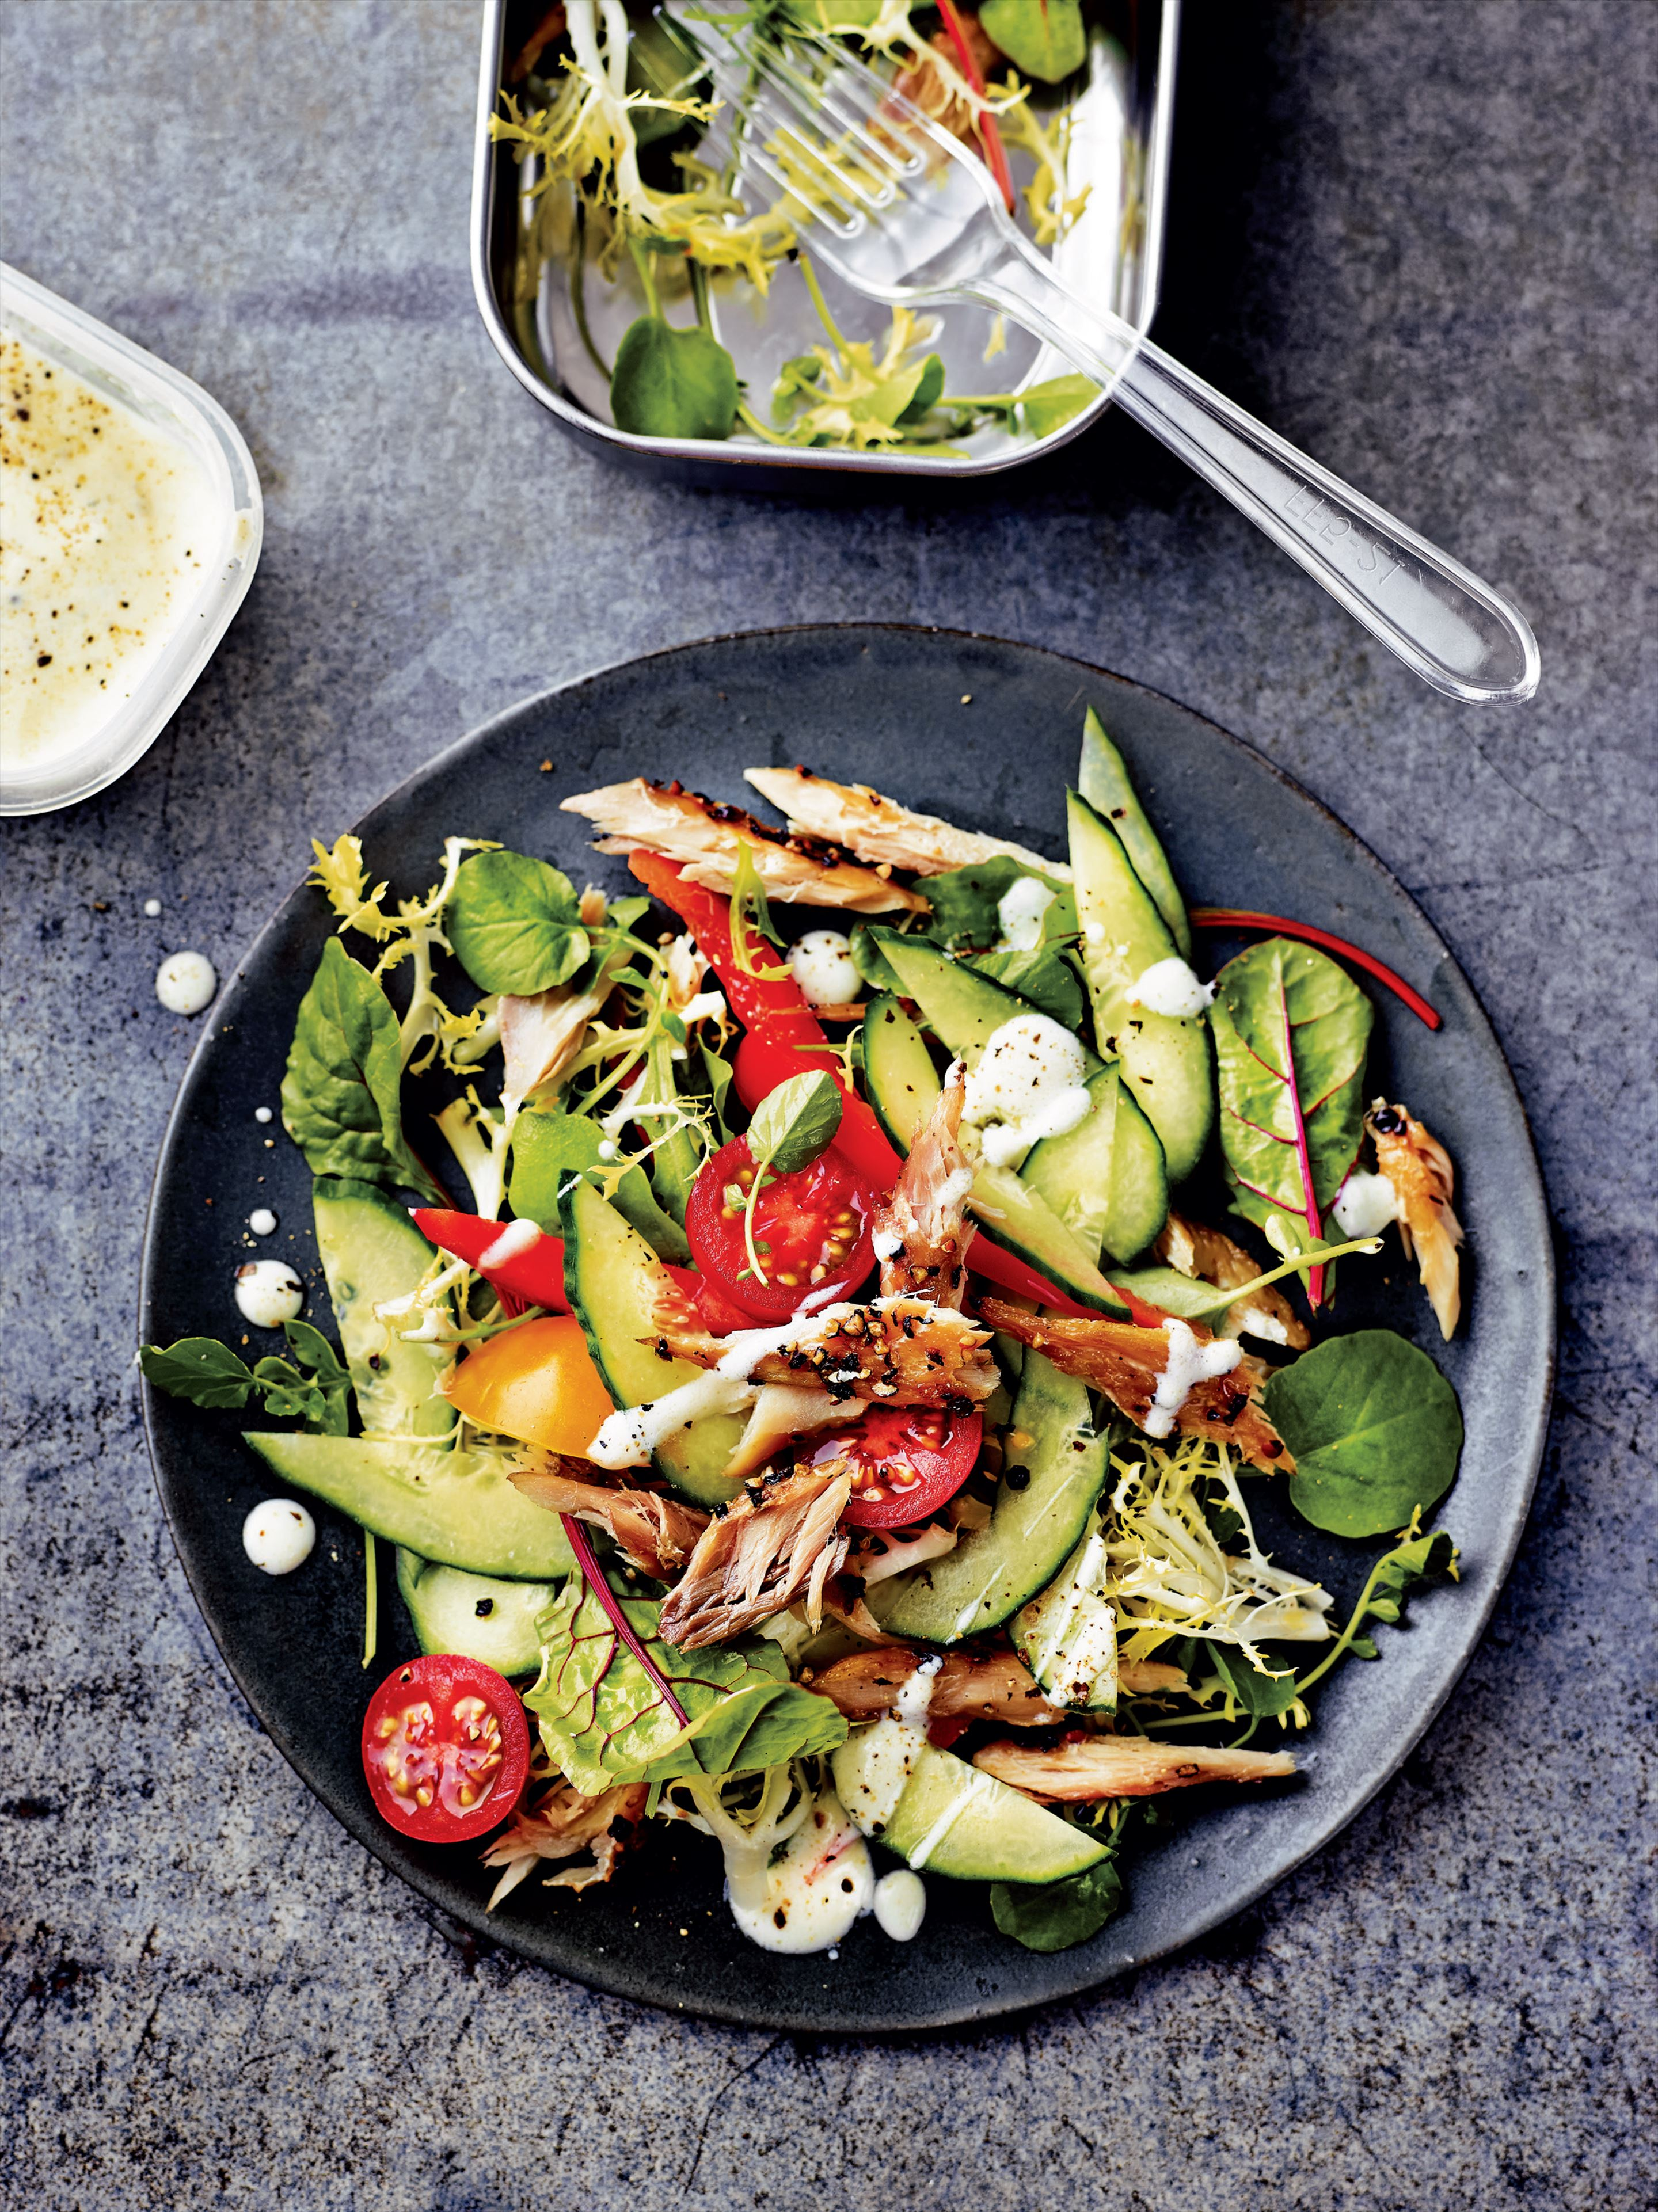 Mackerel omega power salad with horseradish dressing